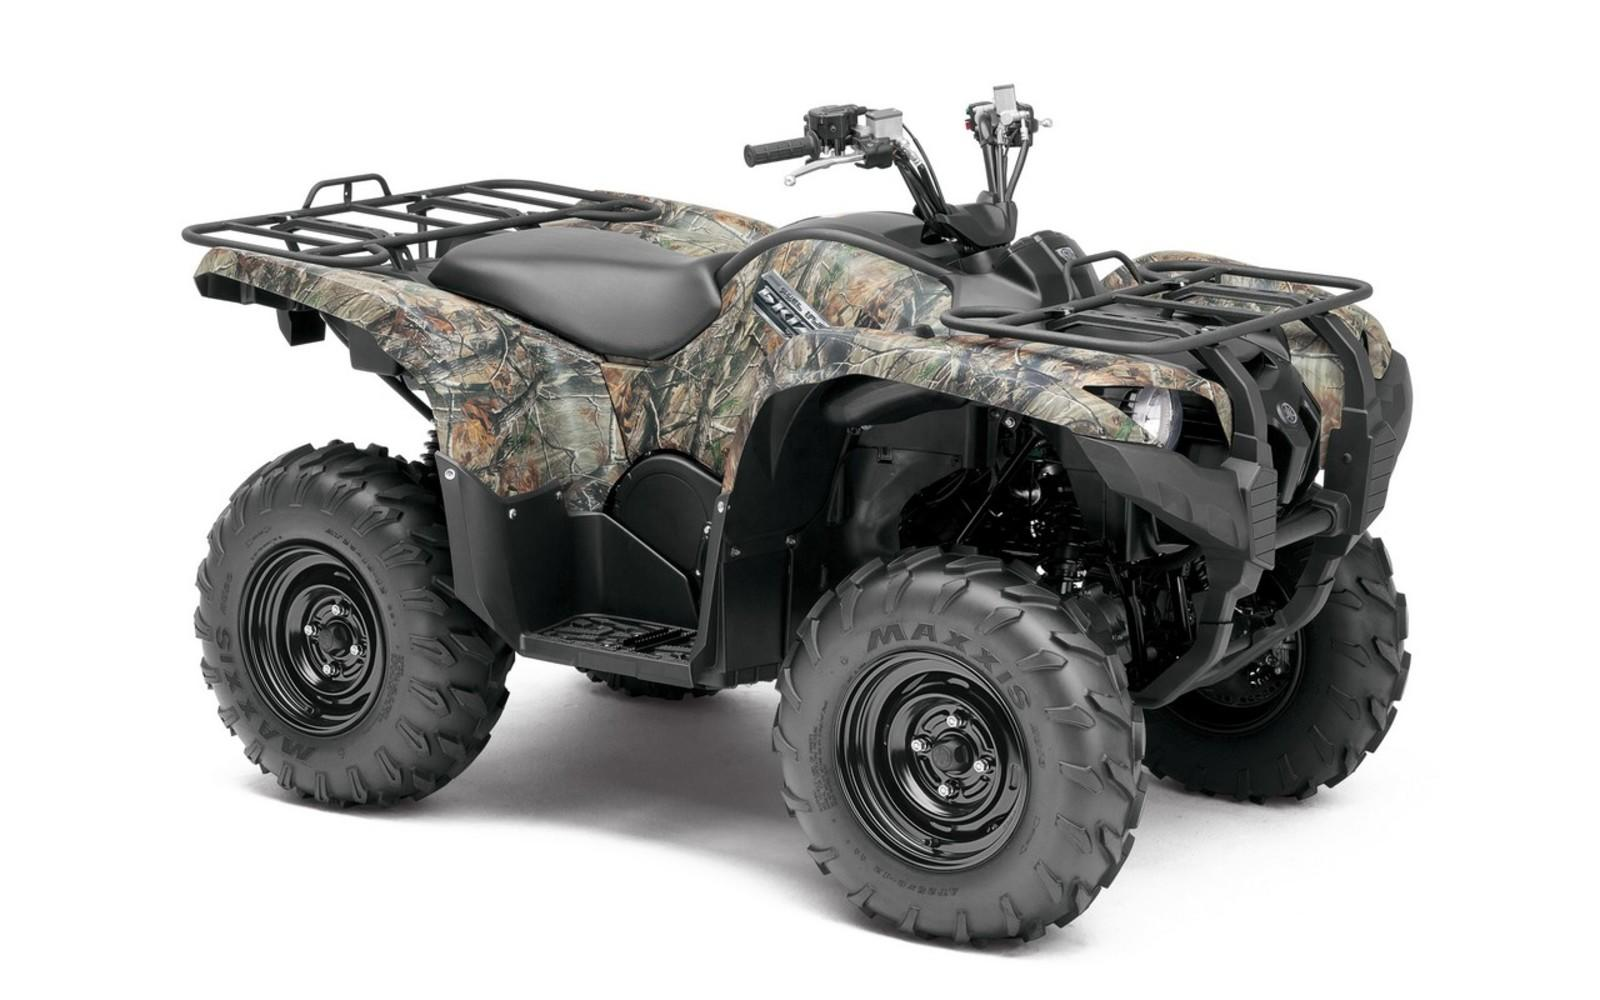 2013 Yamaha Grizzly 700 Fi Auto 4x4 Review Top Speed